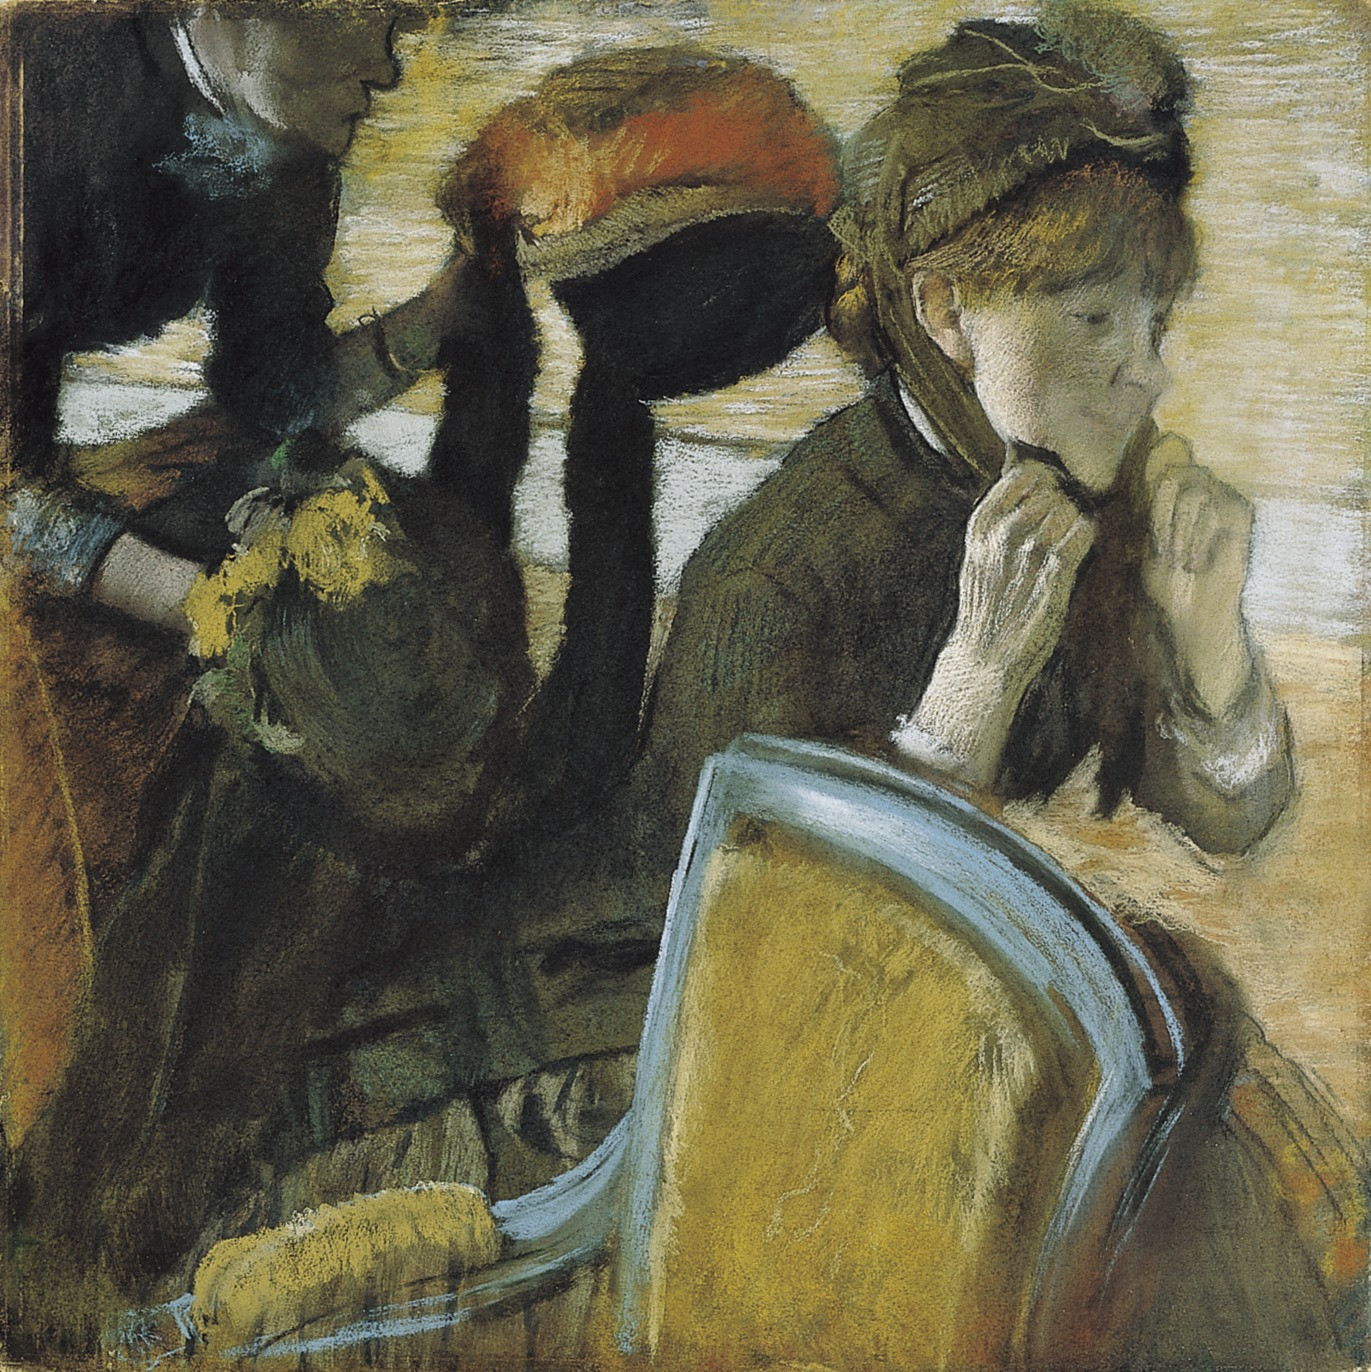 Hilaire-Germain-Edgar Degas. At the Milliner's (Chez la modiste). c. 1882